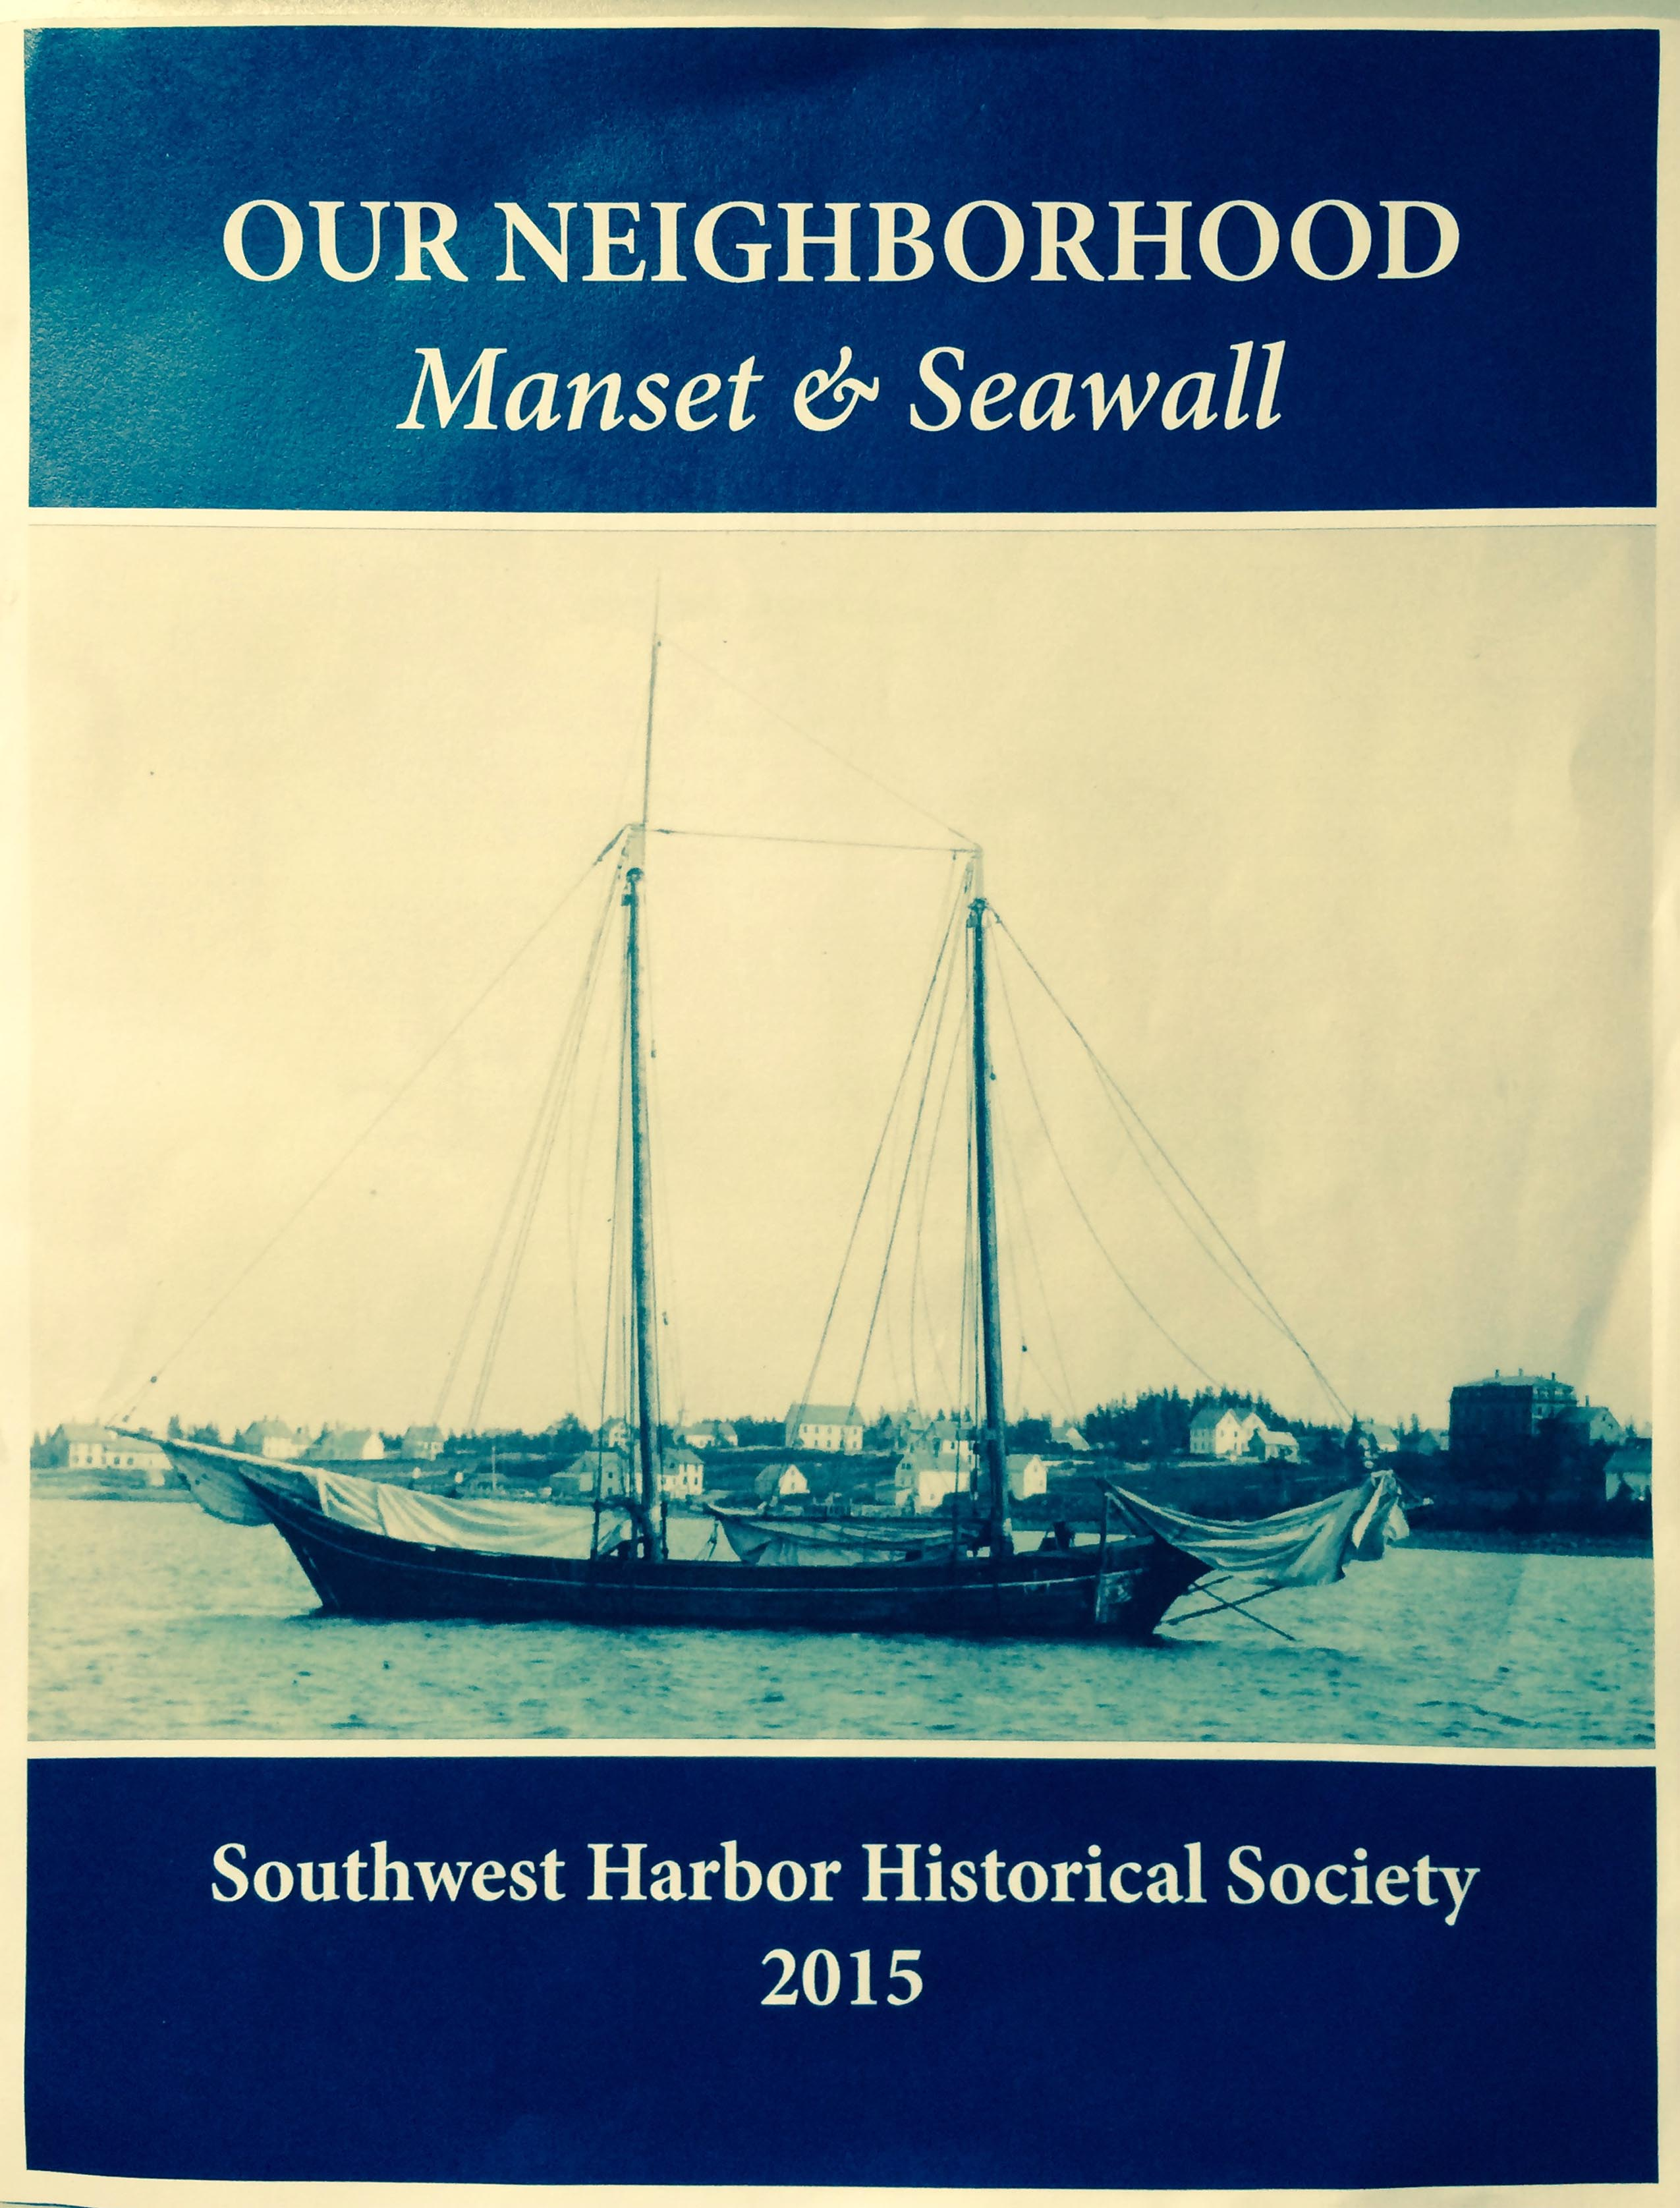 manset-seawall book